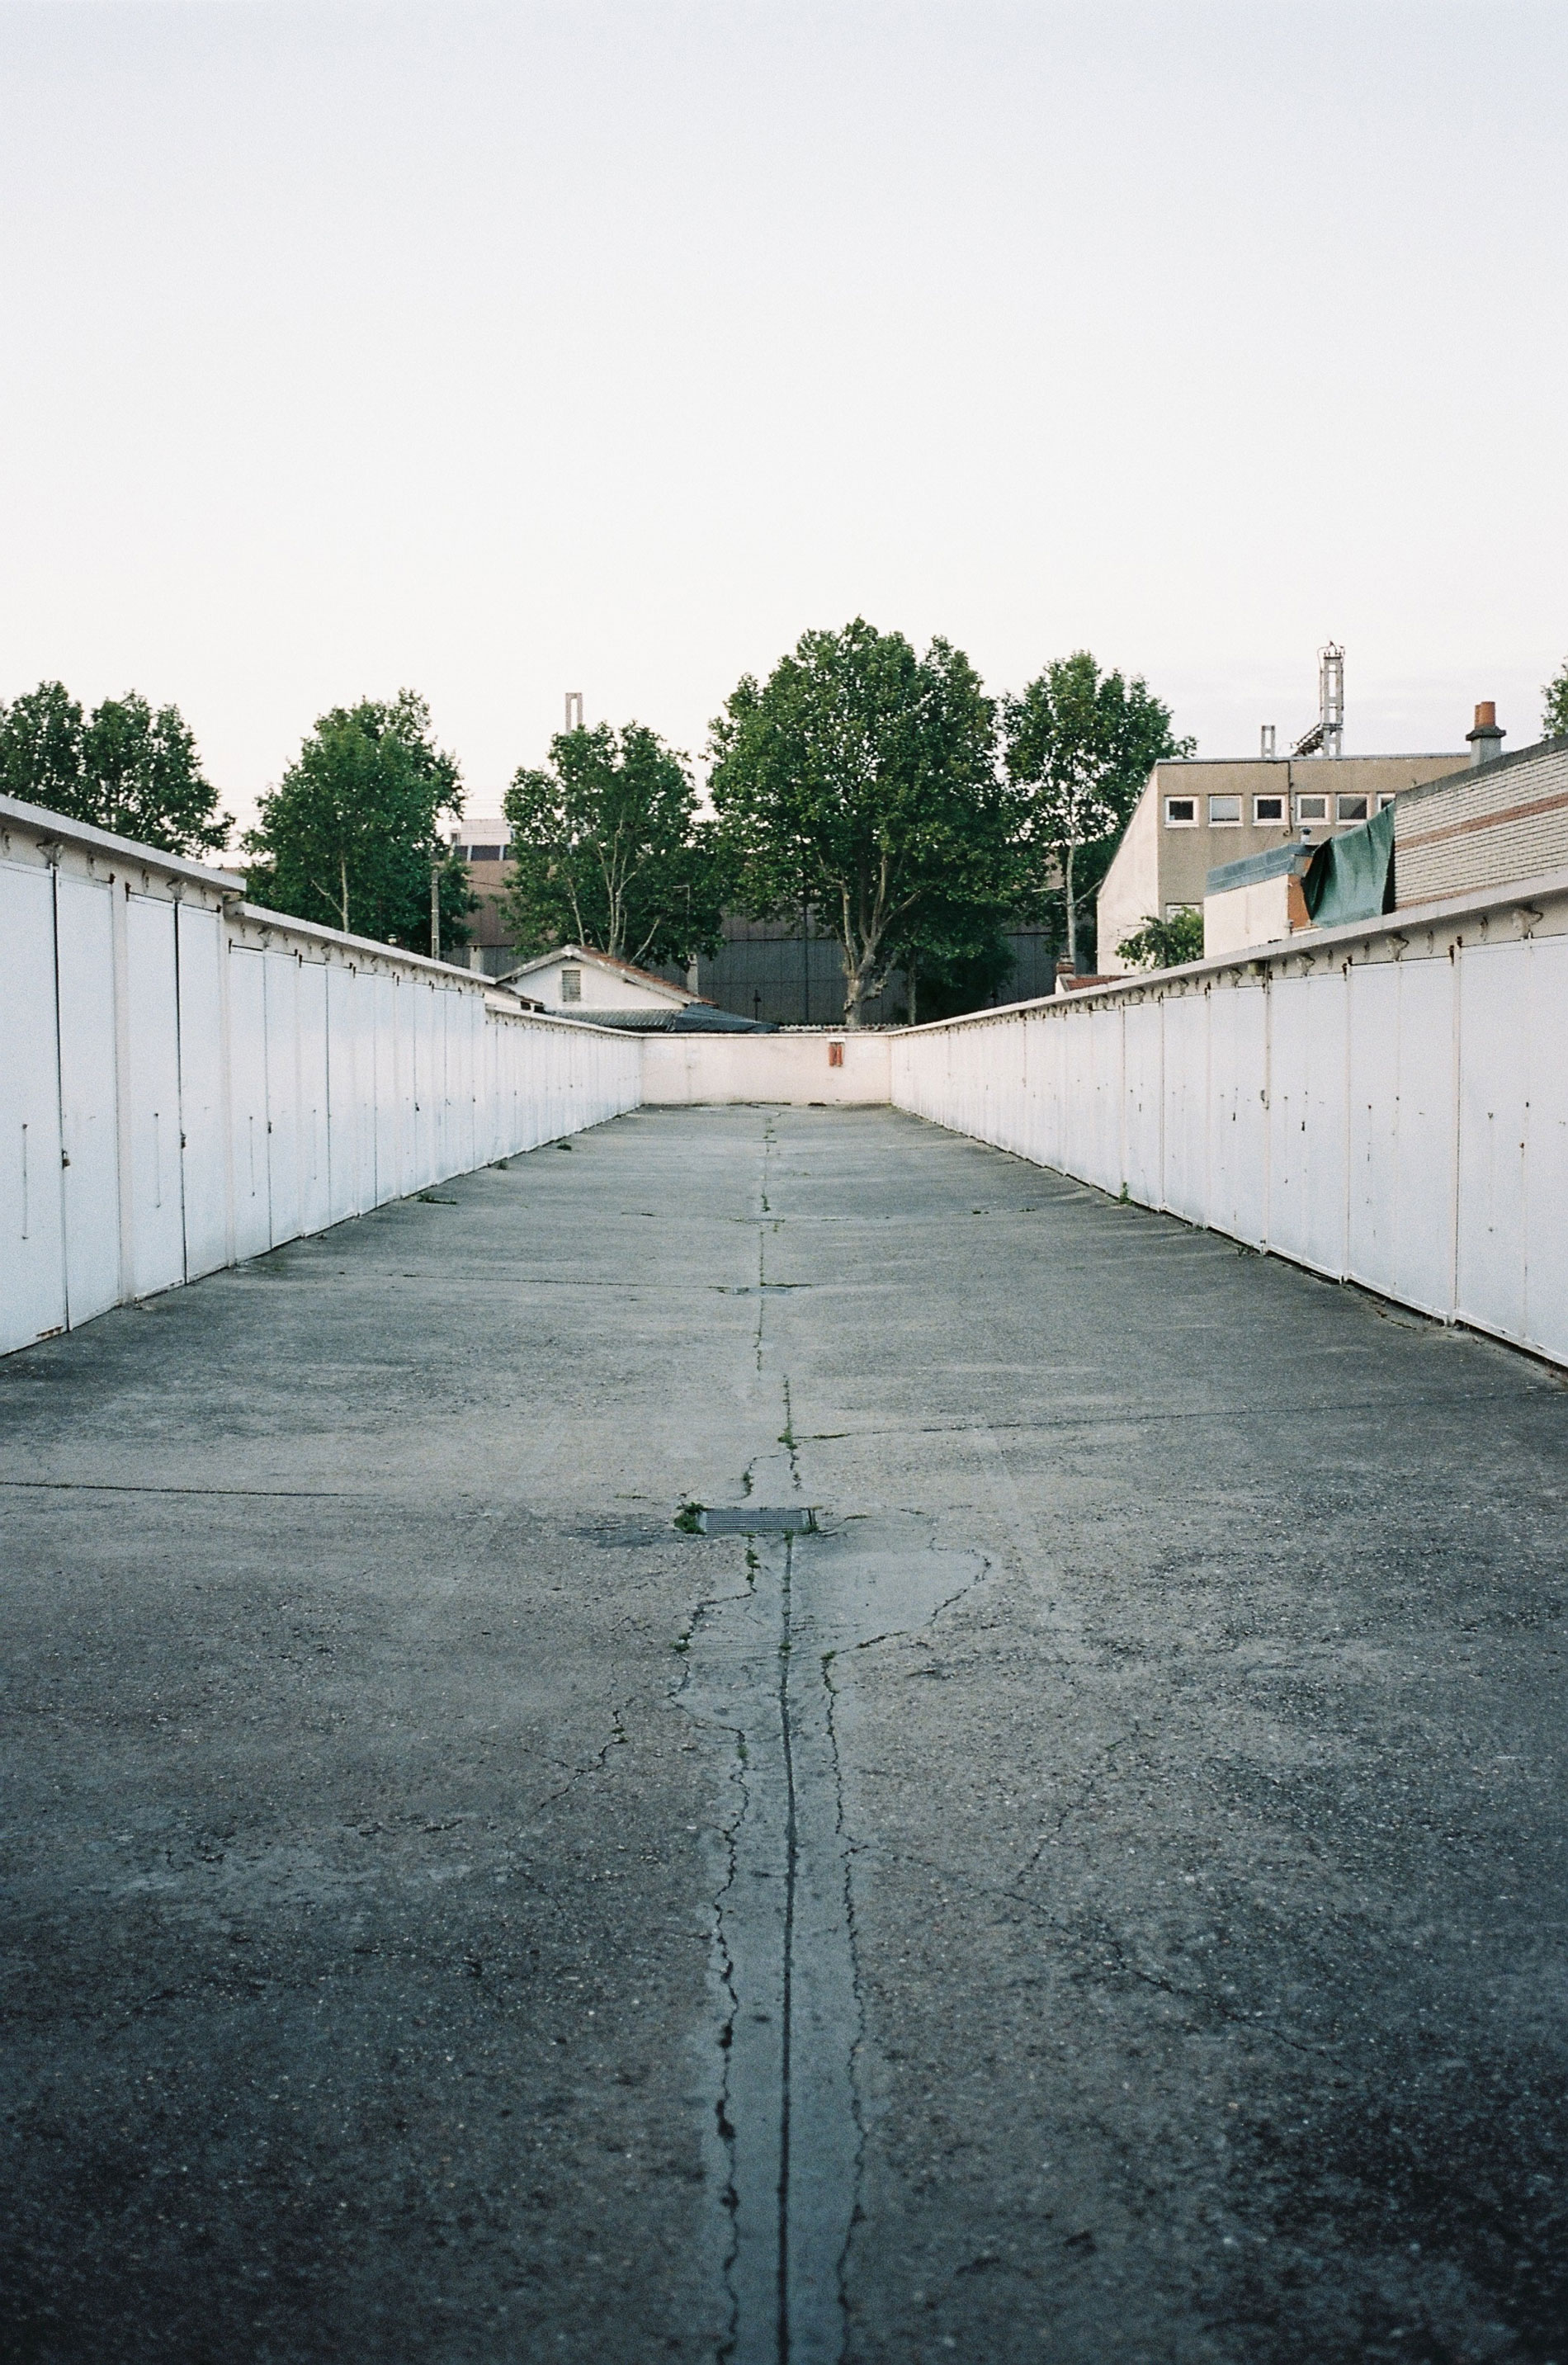 Emma Le Doyen, Vanves n°2, Extract from Sulking in a Corner, 2013